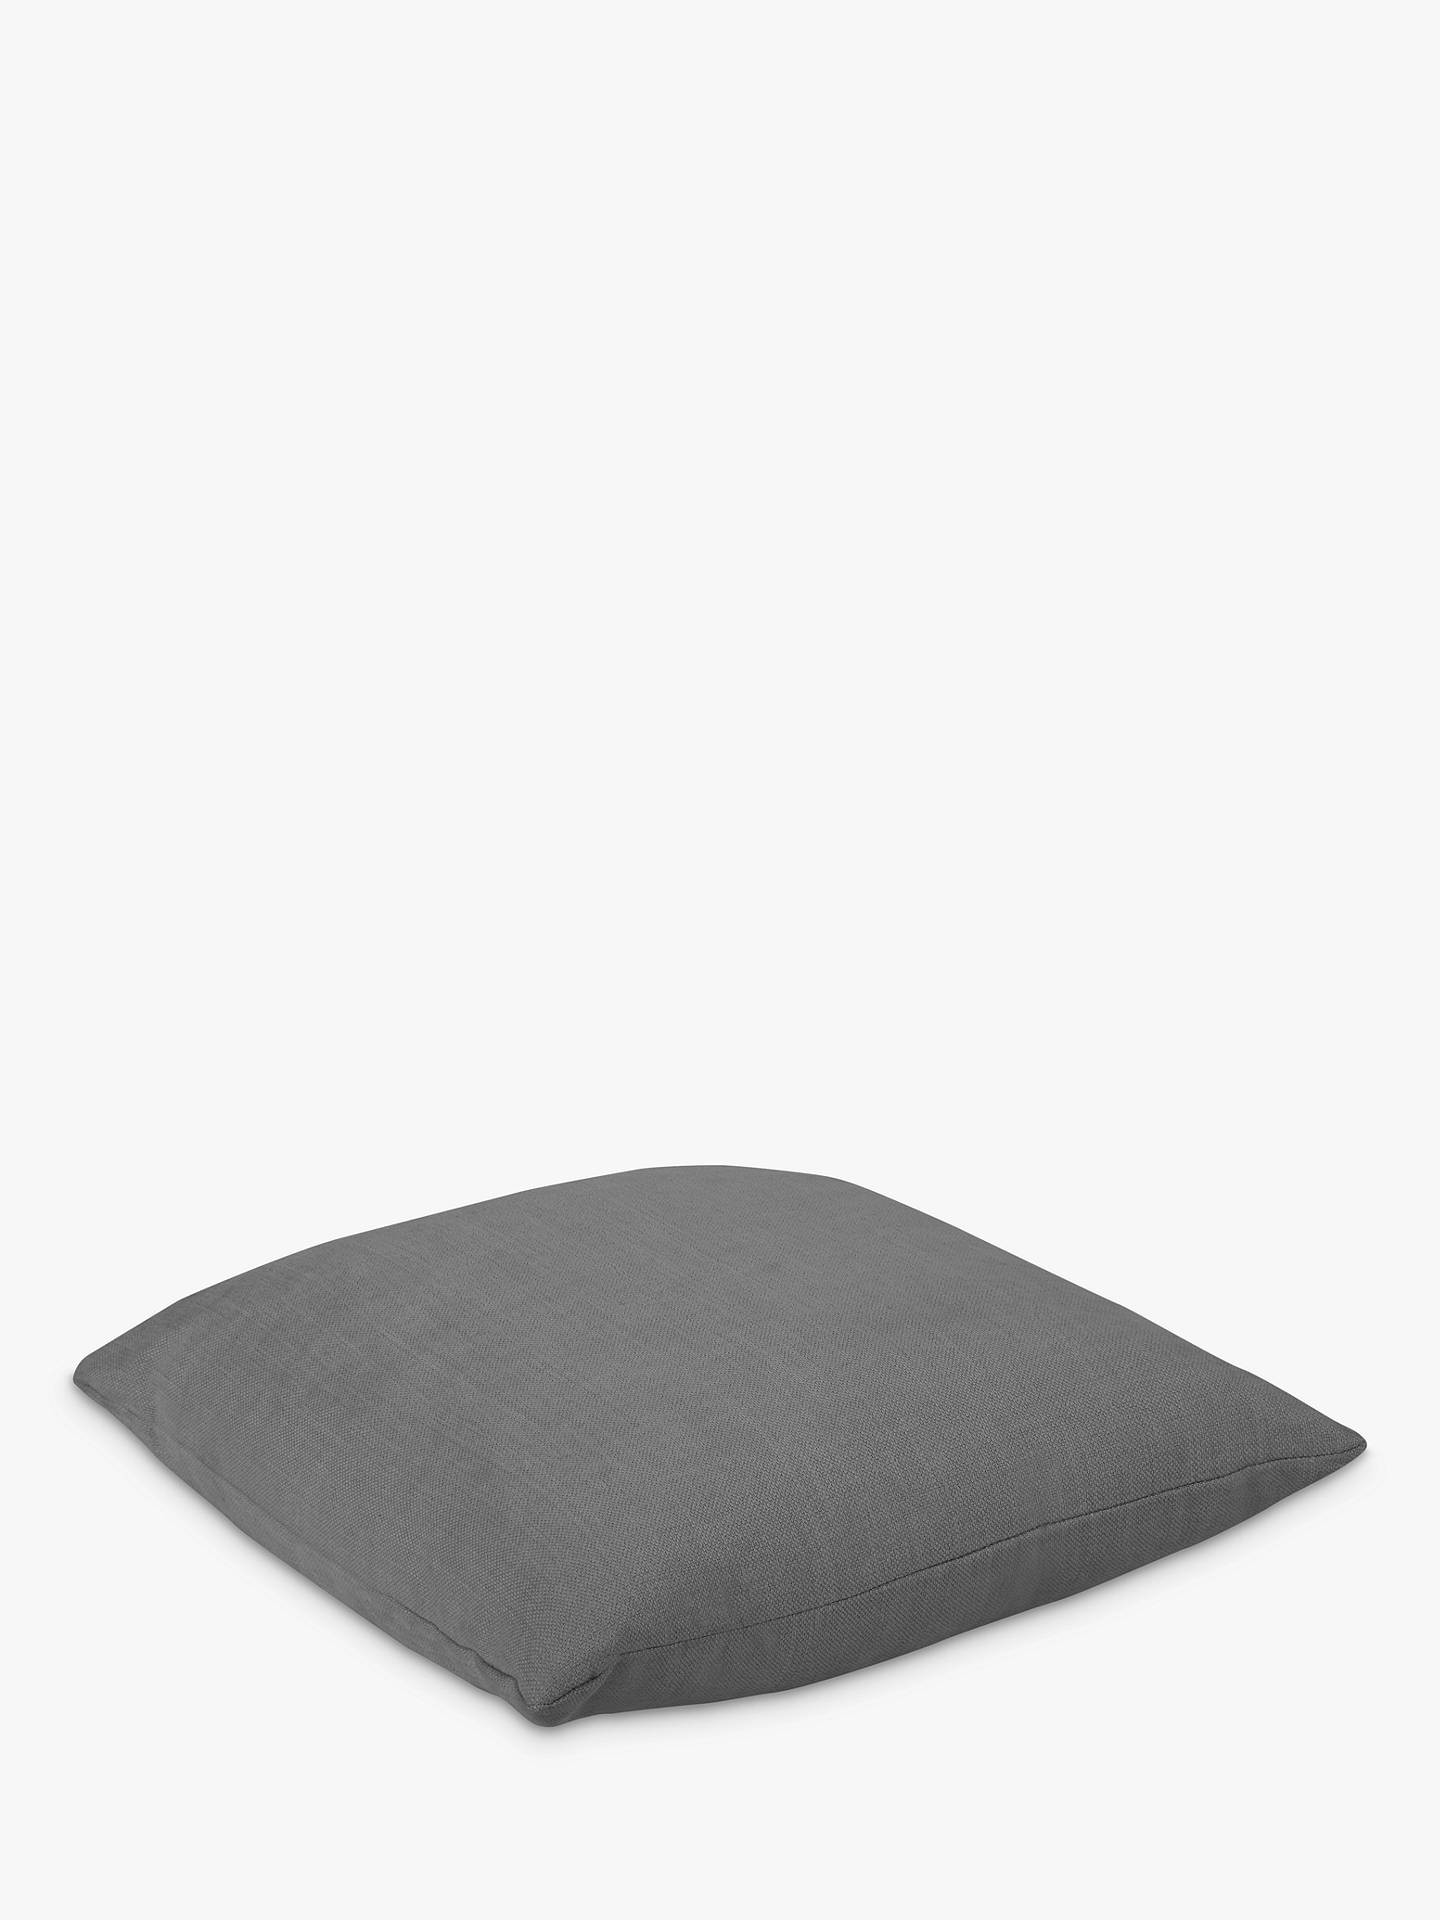 BuySquare Scatter Cushion by Loaf at John Lewis, Clever Linen Meteor Grey Online at johnlewis.com